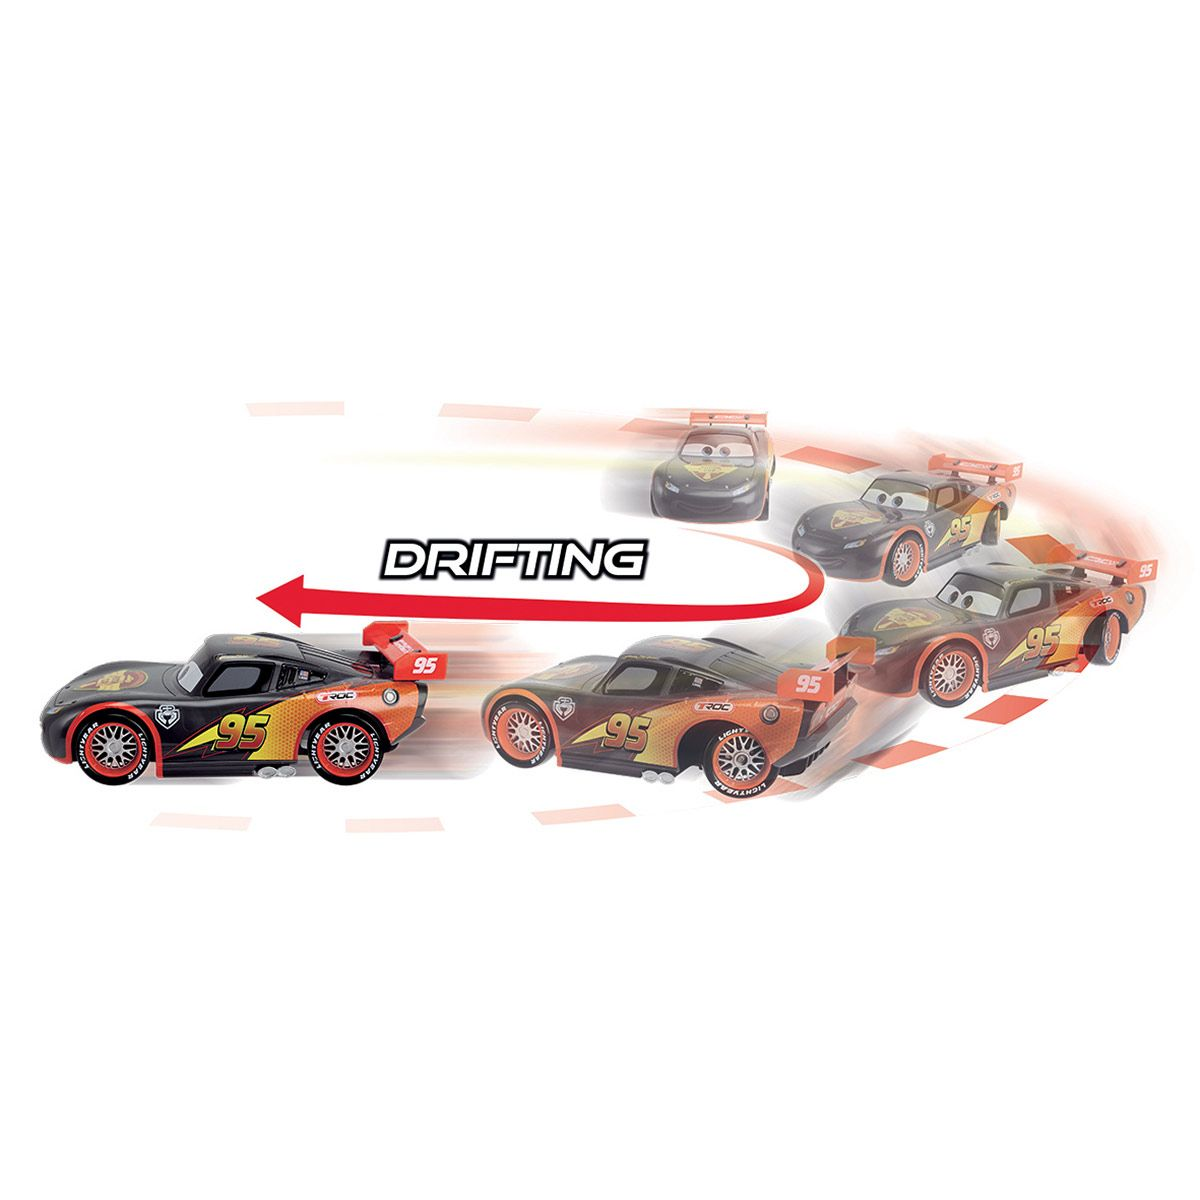 Voiture 3 Radiocommandée Cars Lightning Mcqueen Drifting Voitures f7gy6vYb